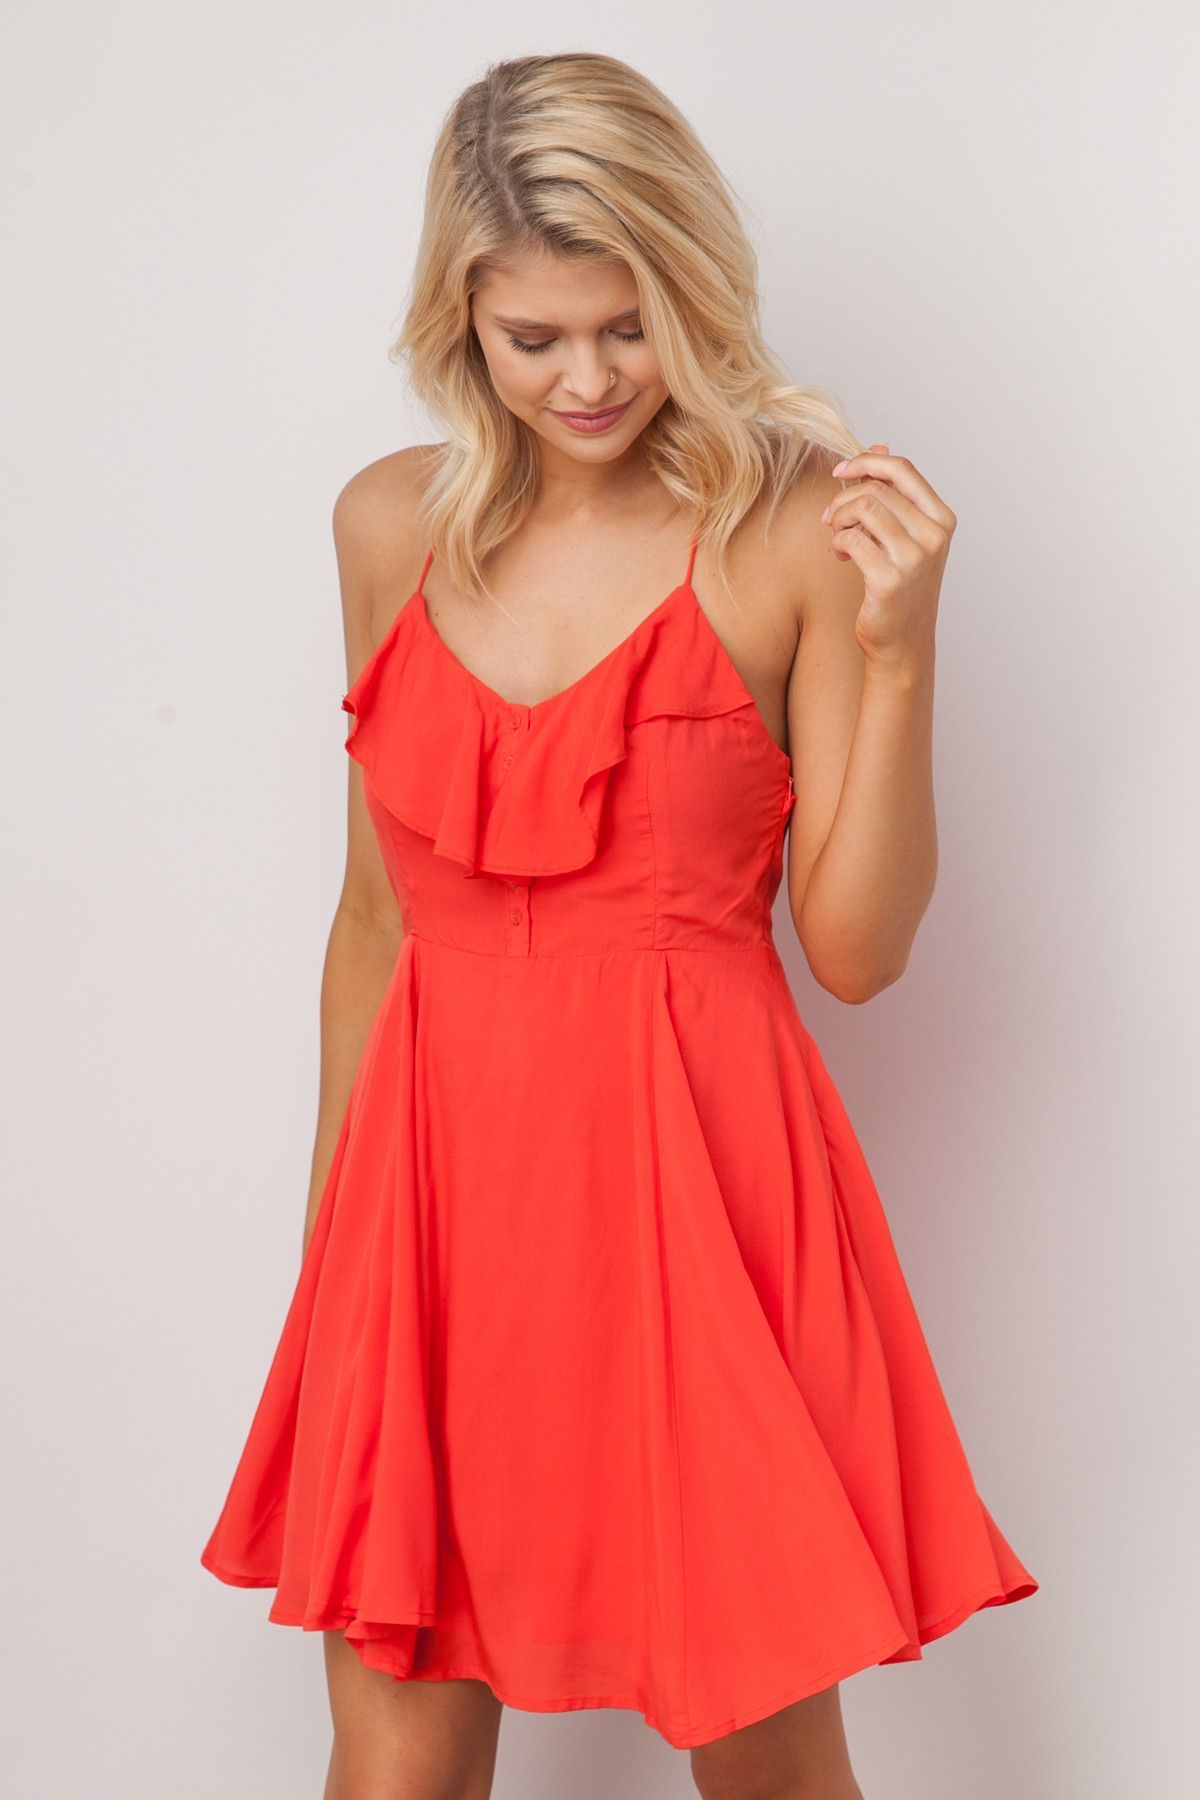 Save the last dance dress in tomato red overlay dancing and neckline